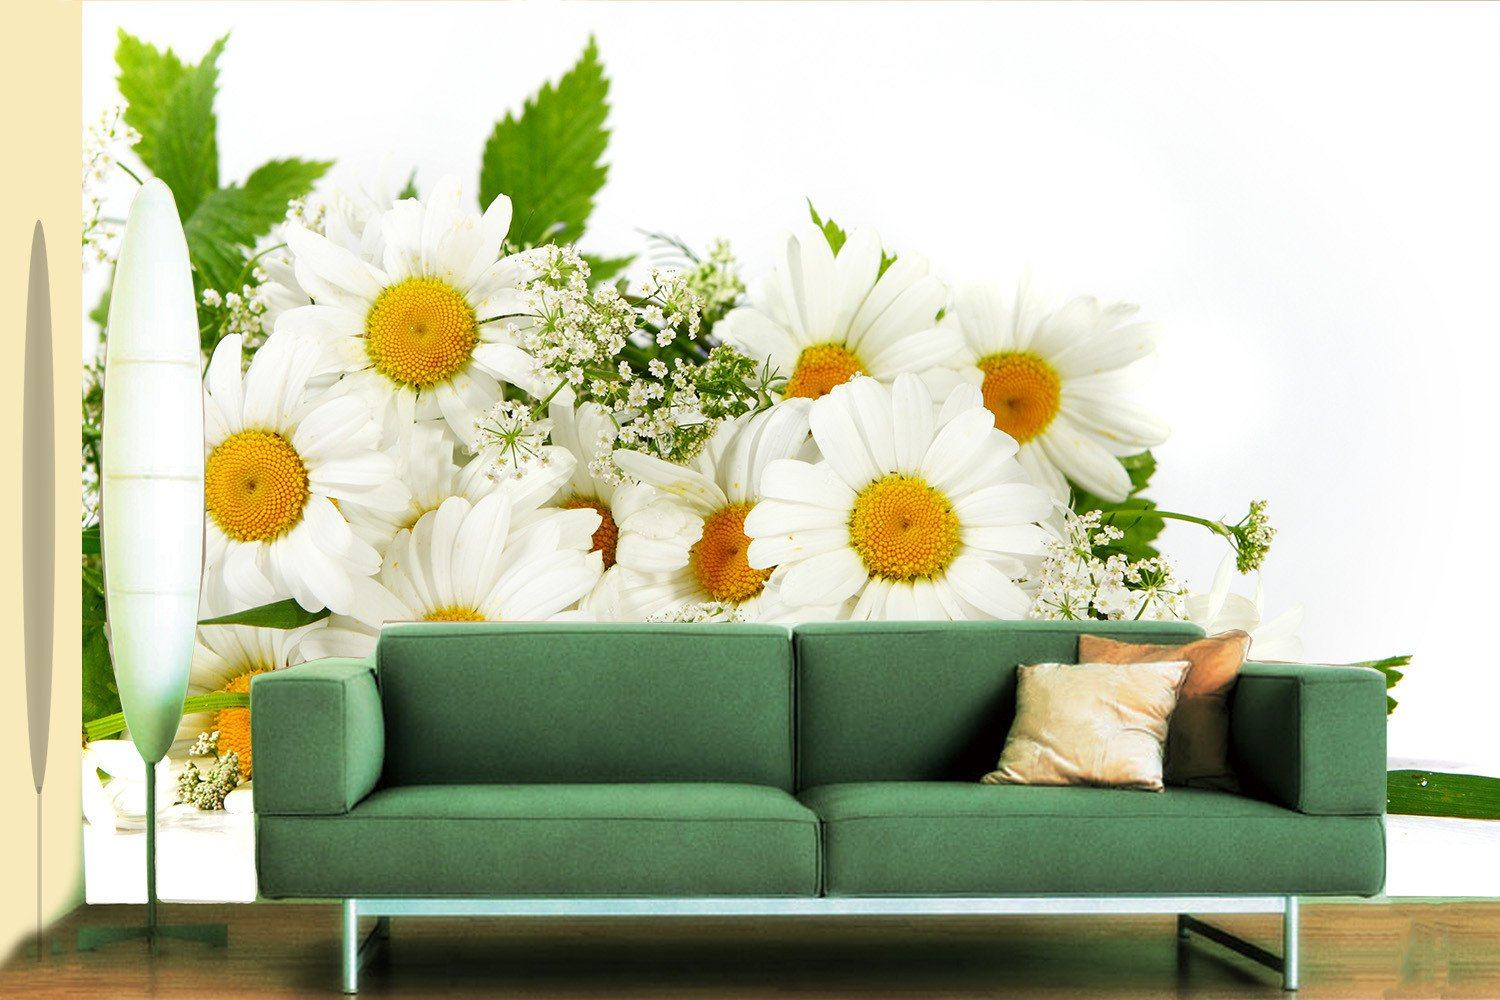 Fresh Flowers 4 Wallpaper AJ Wallpaper